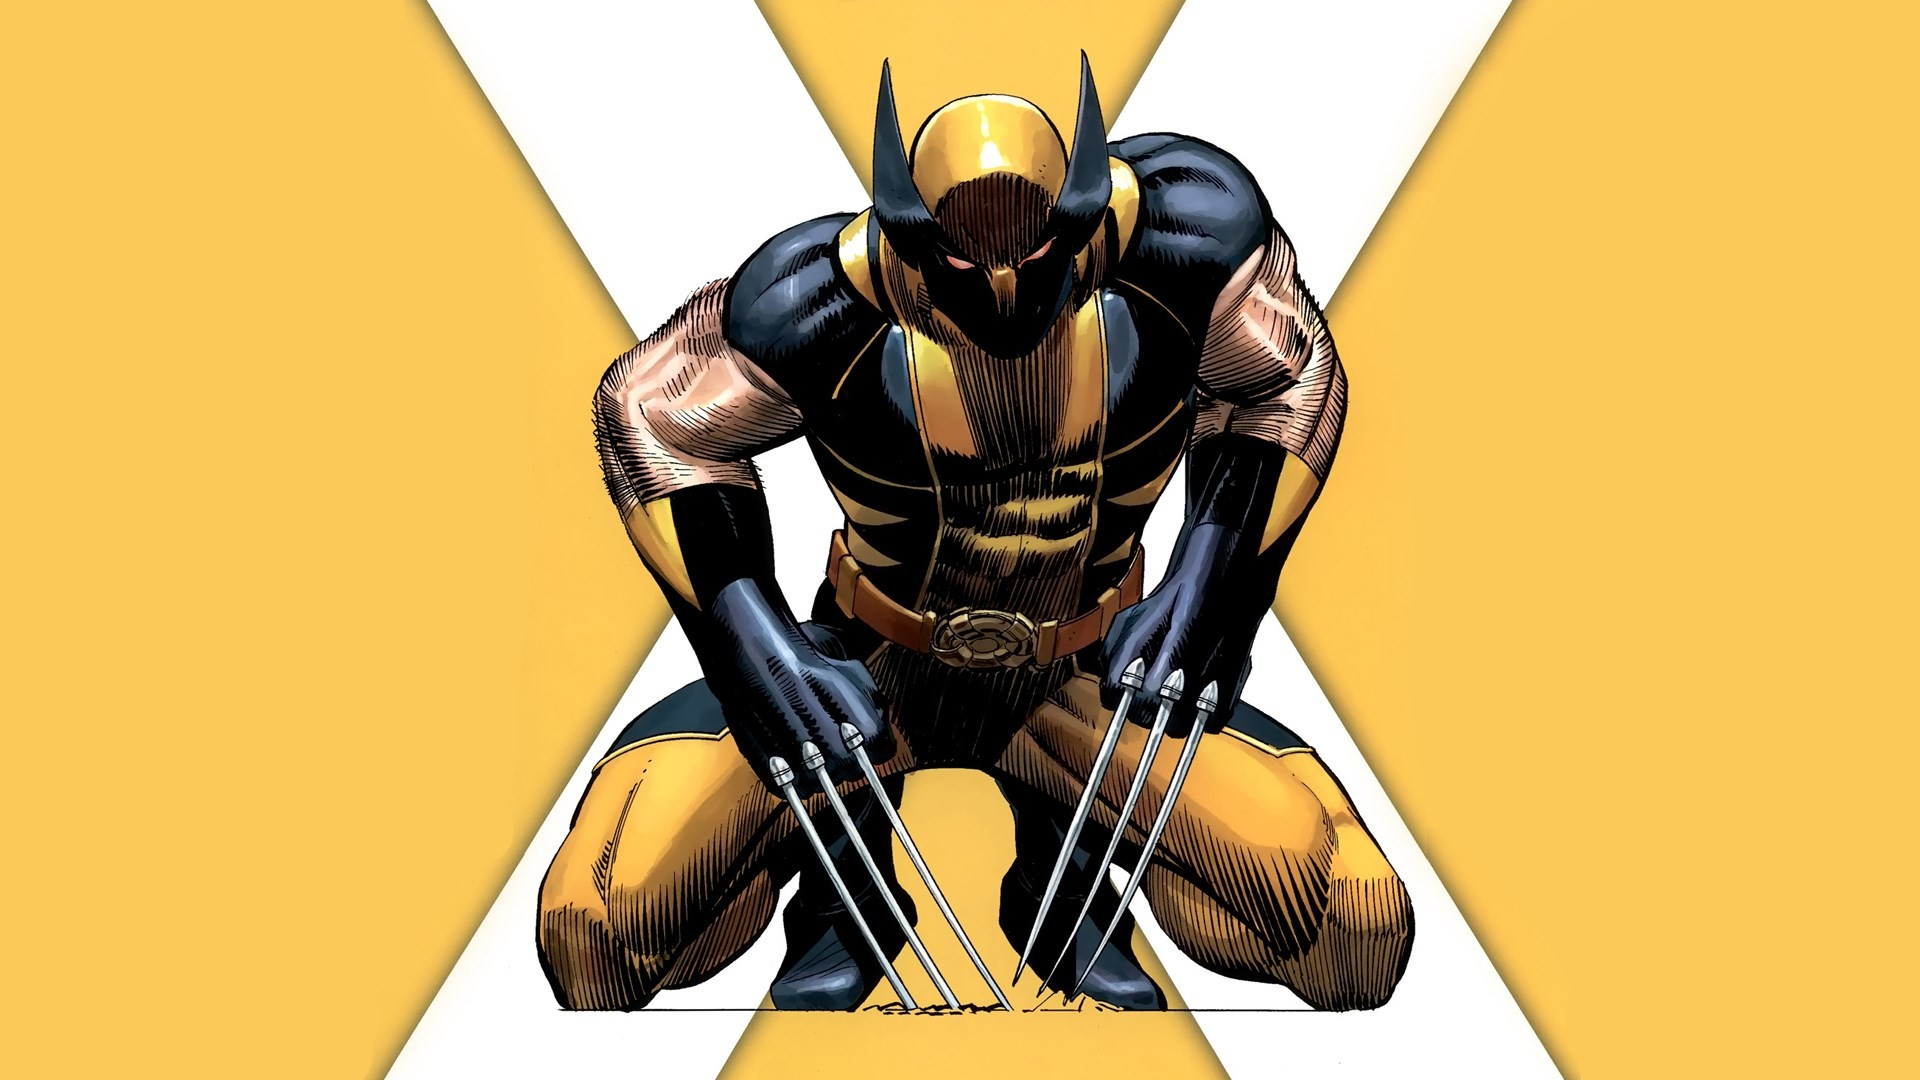 1920x1080 wolverine wallpaper for mac computers